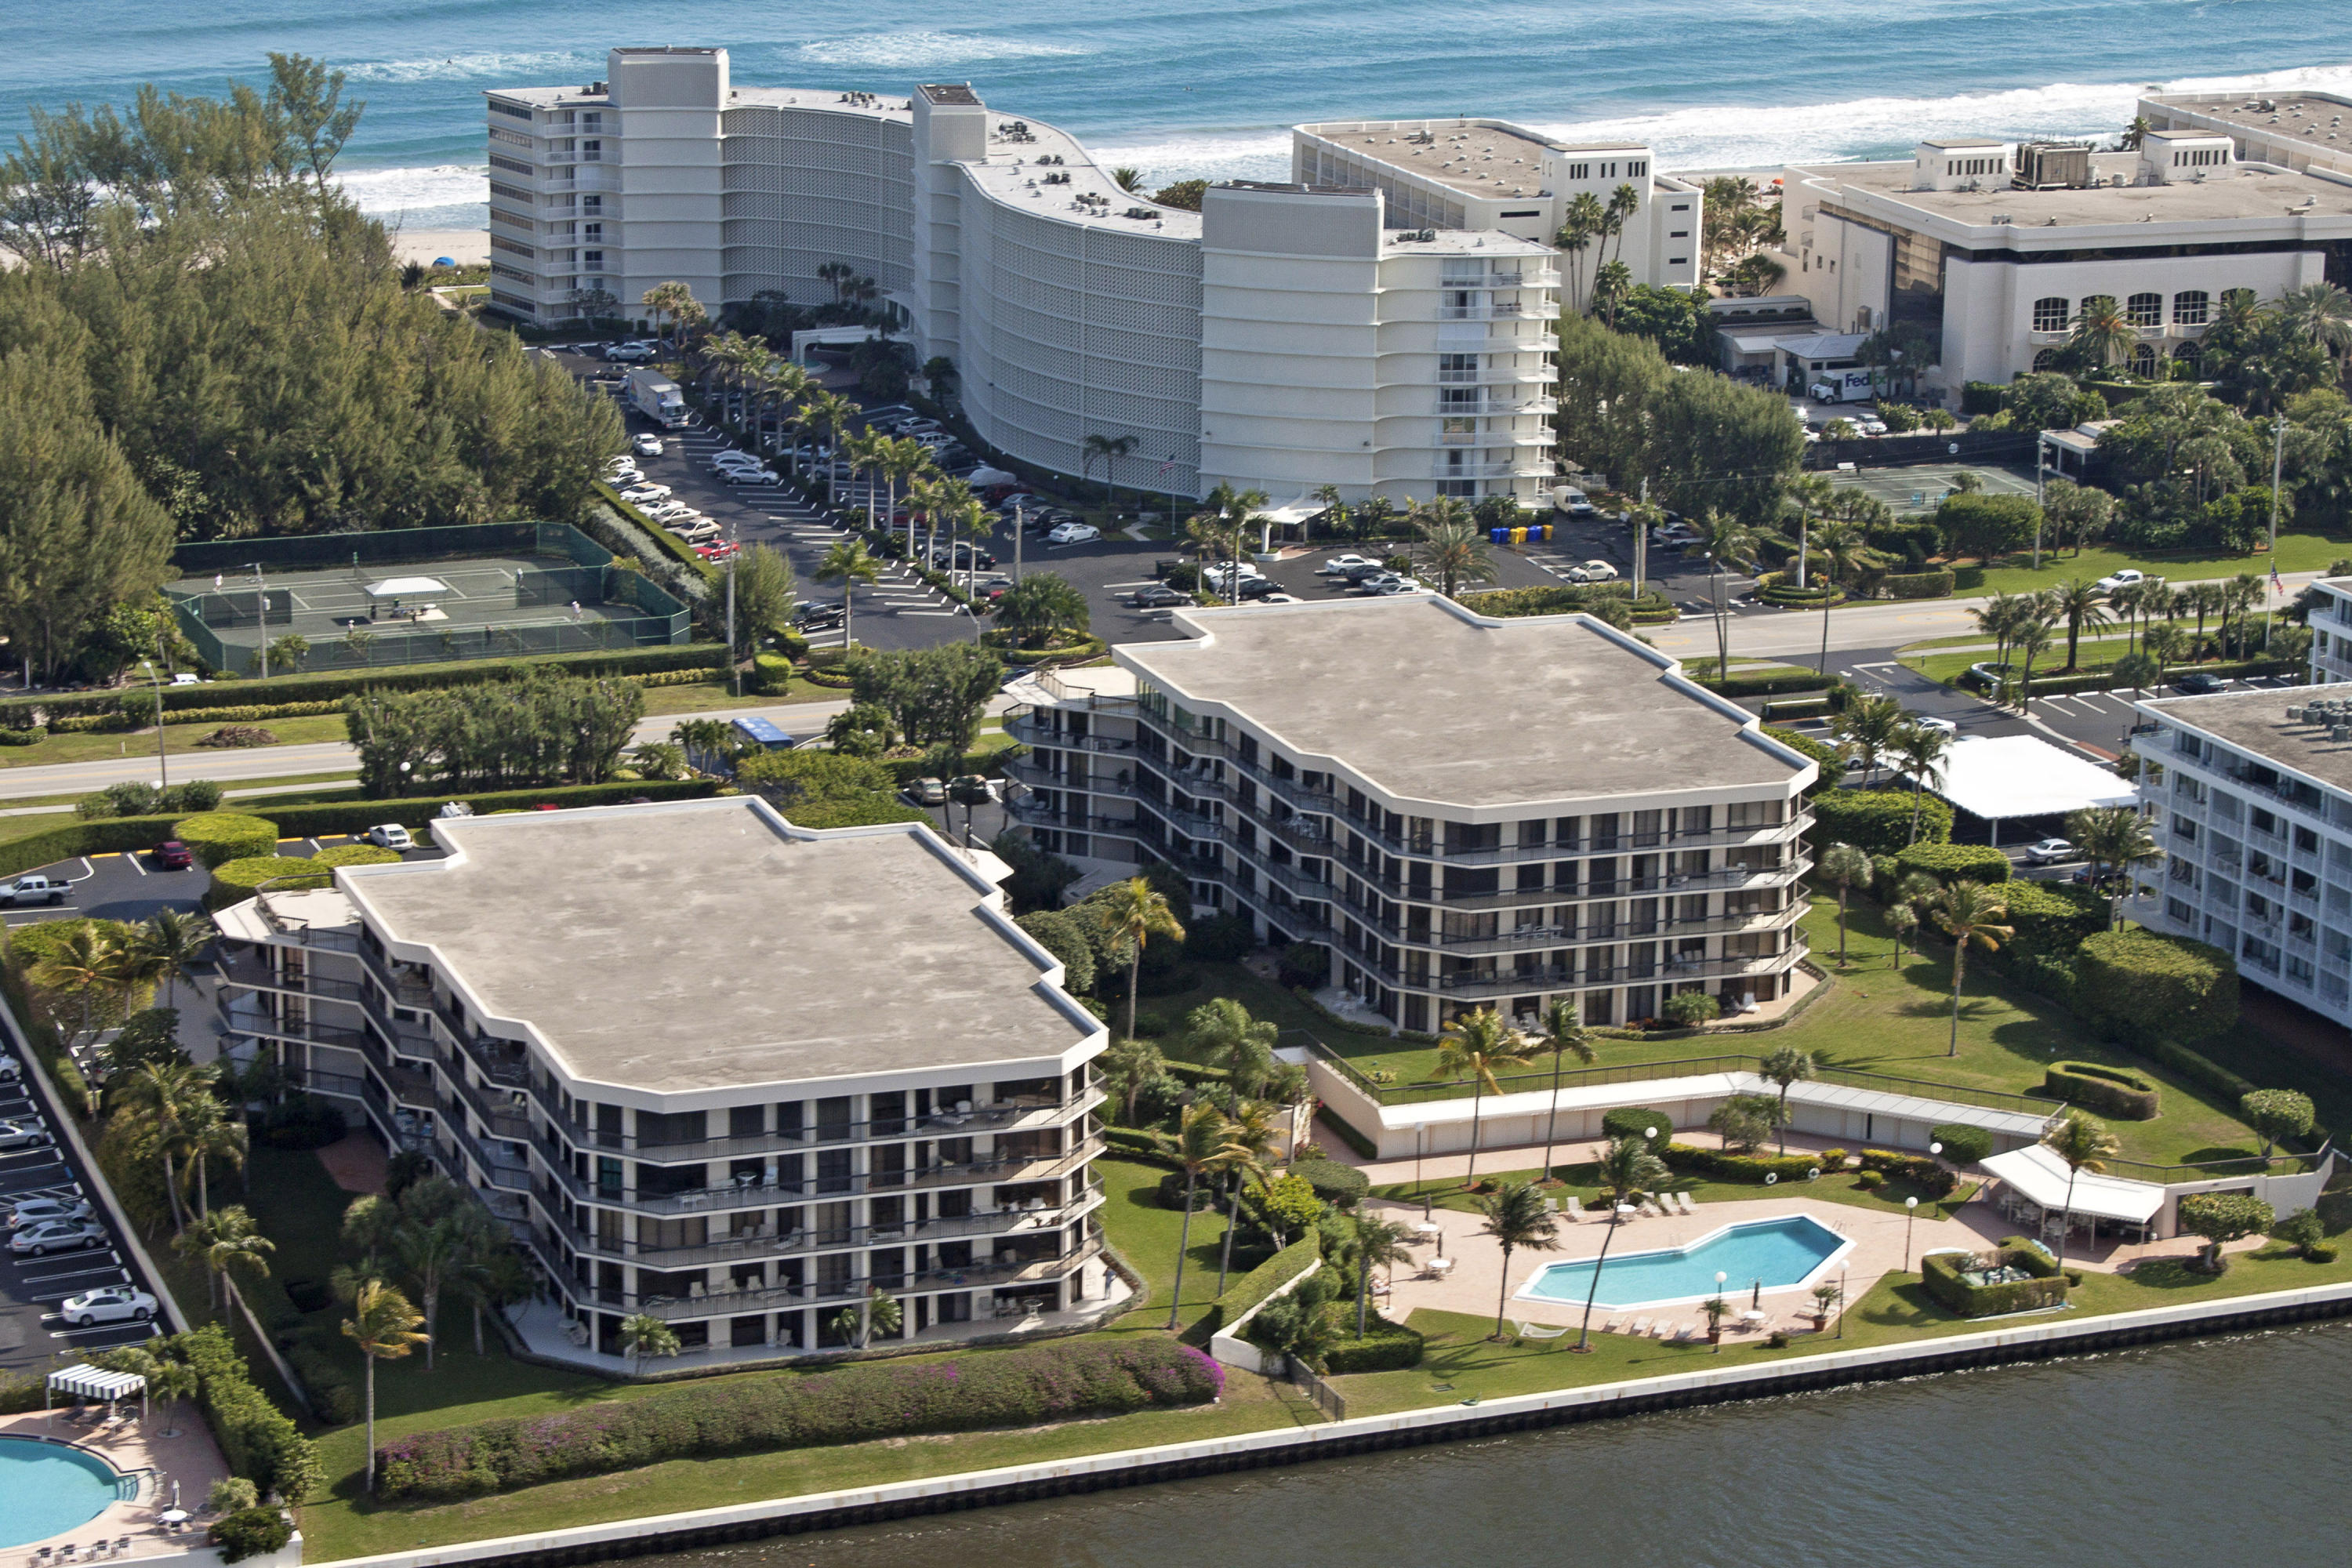 This is a real stunner! The only Intracoastal luxury building with garage parking in Palm Beach priced under 2M. Exposure is NW and just one unit east of the water. If you are seeking the finest finishes, this newly renovated two bedroom was reconfigured with an added half bath and open floor plan and gourmet kitchen. New Gym, Lobbies, Hallways and Clubhouse on pool deck, Close to Four Seasons Resort, Farmers Market, Par 3 Golf Course, shopping and restaurants.. Deeded garage space 29, outside # 41